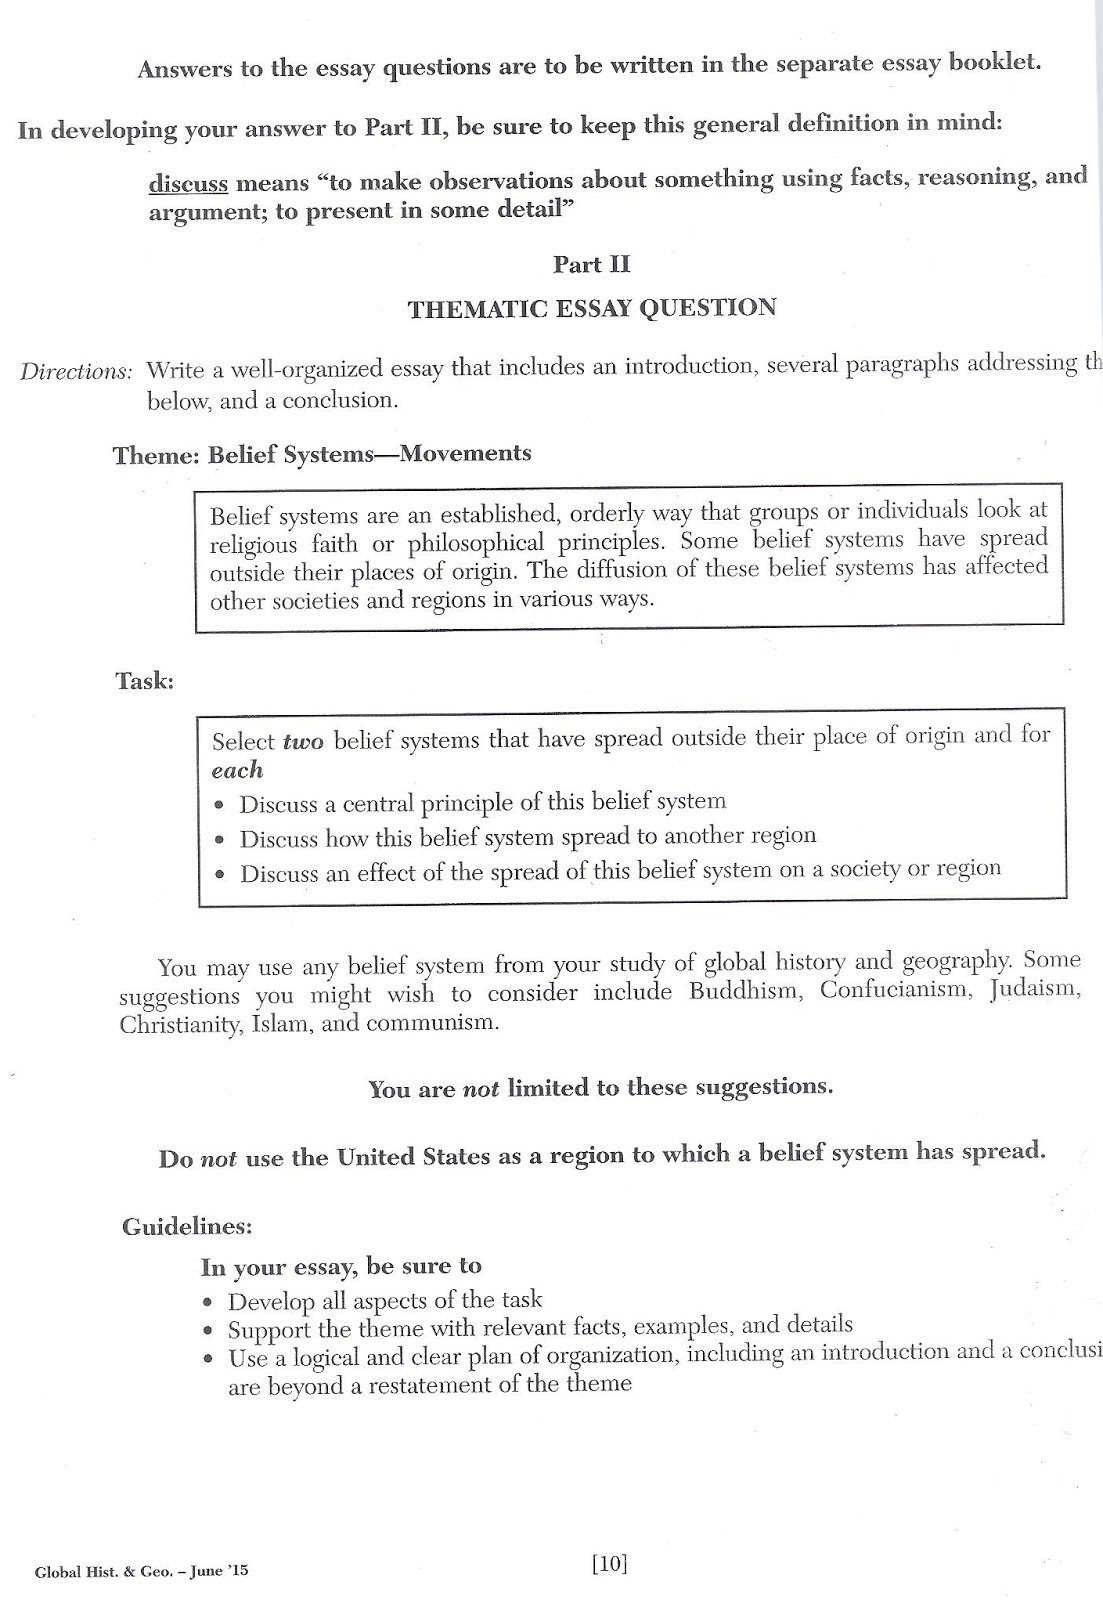 august 2001 us history regents essay 2001 august turning points role of women --cannot use the united states in your main answer global history regents.